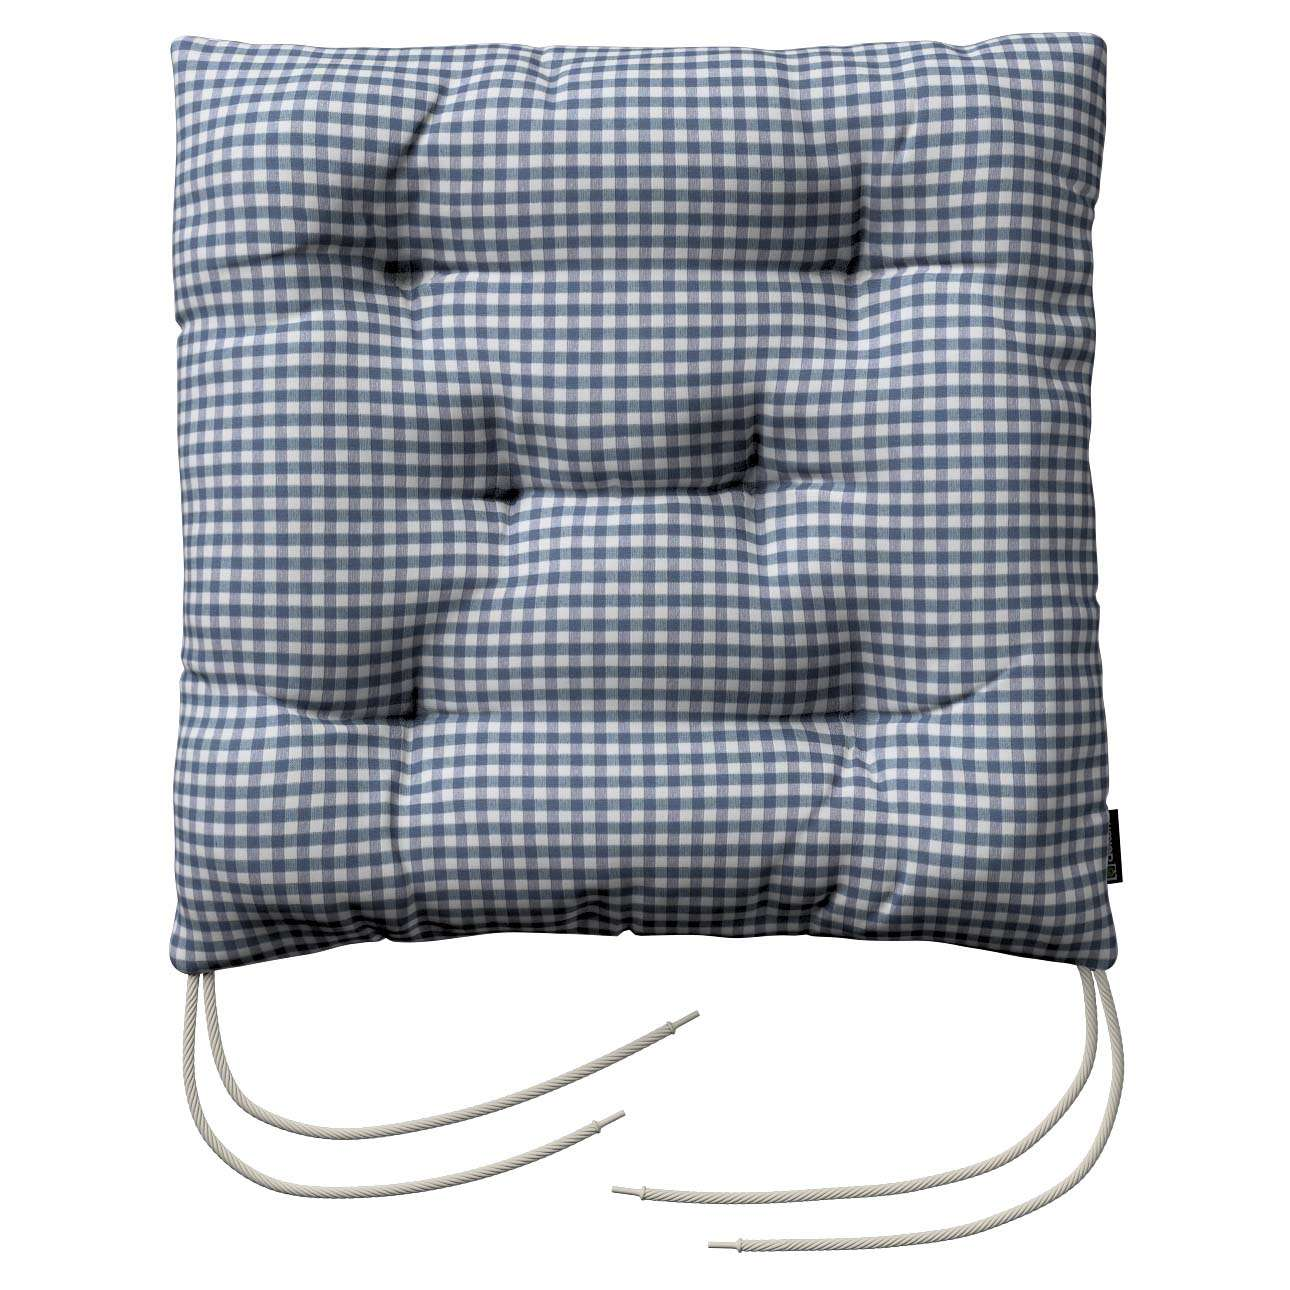 Jacek seat pad with ties 40 x 40 x 8 cm (16 x 16 x 3 inch) in collection Quadro, fabric: 136-00